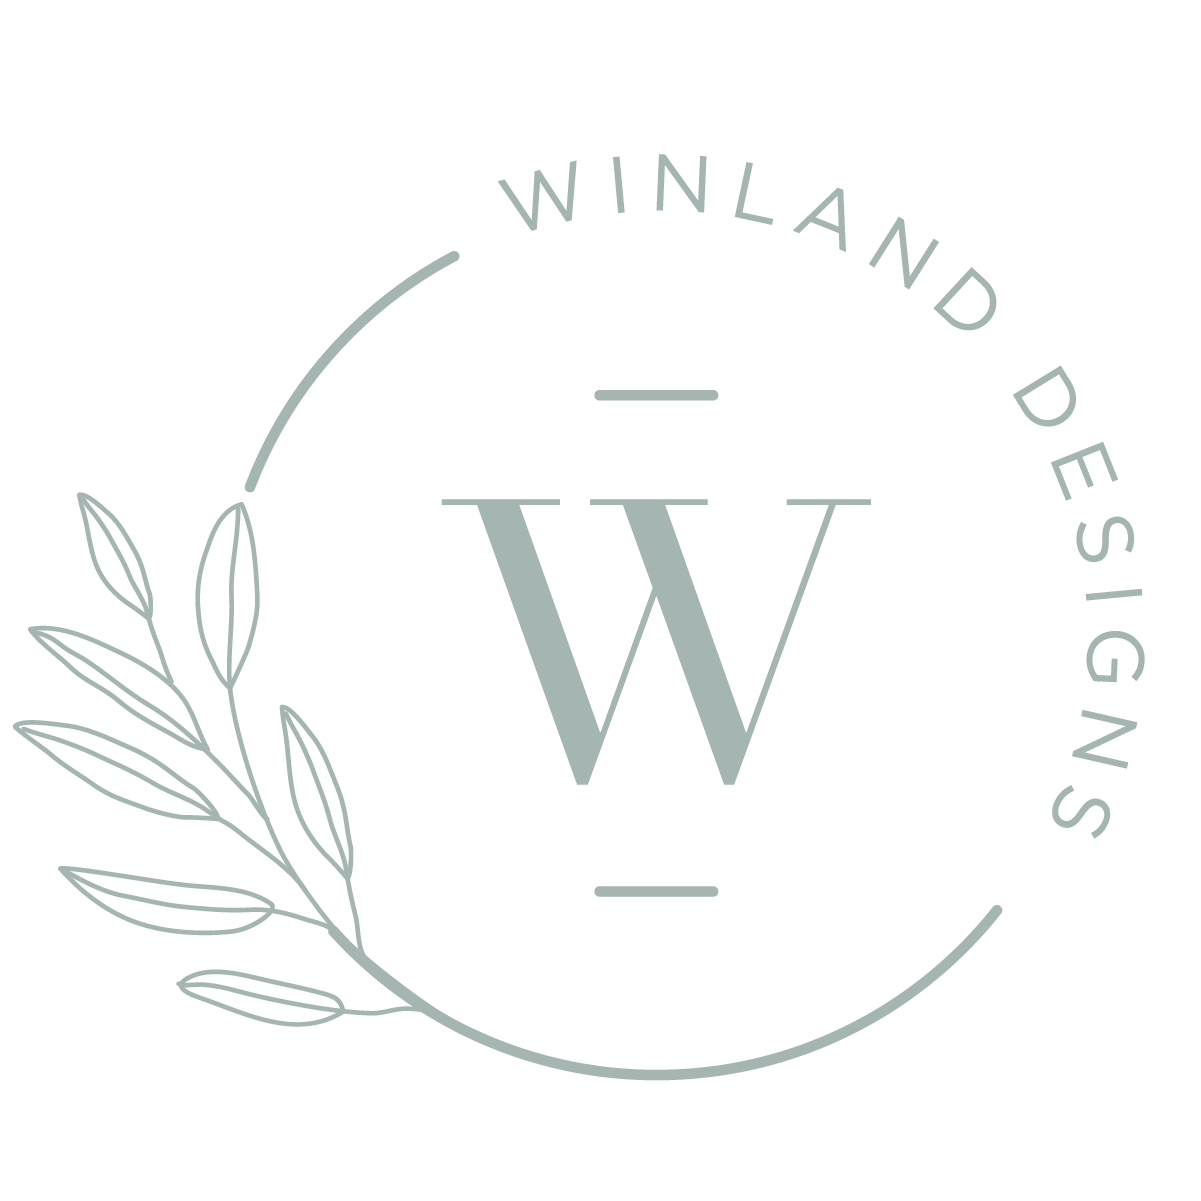 Winland Designs is a Full-Service Interior Design Expert in Indianapolis, Indiana